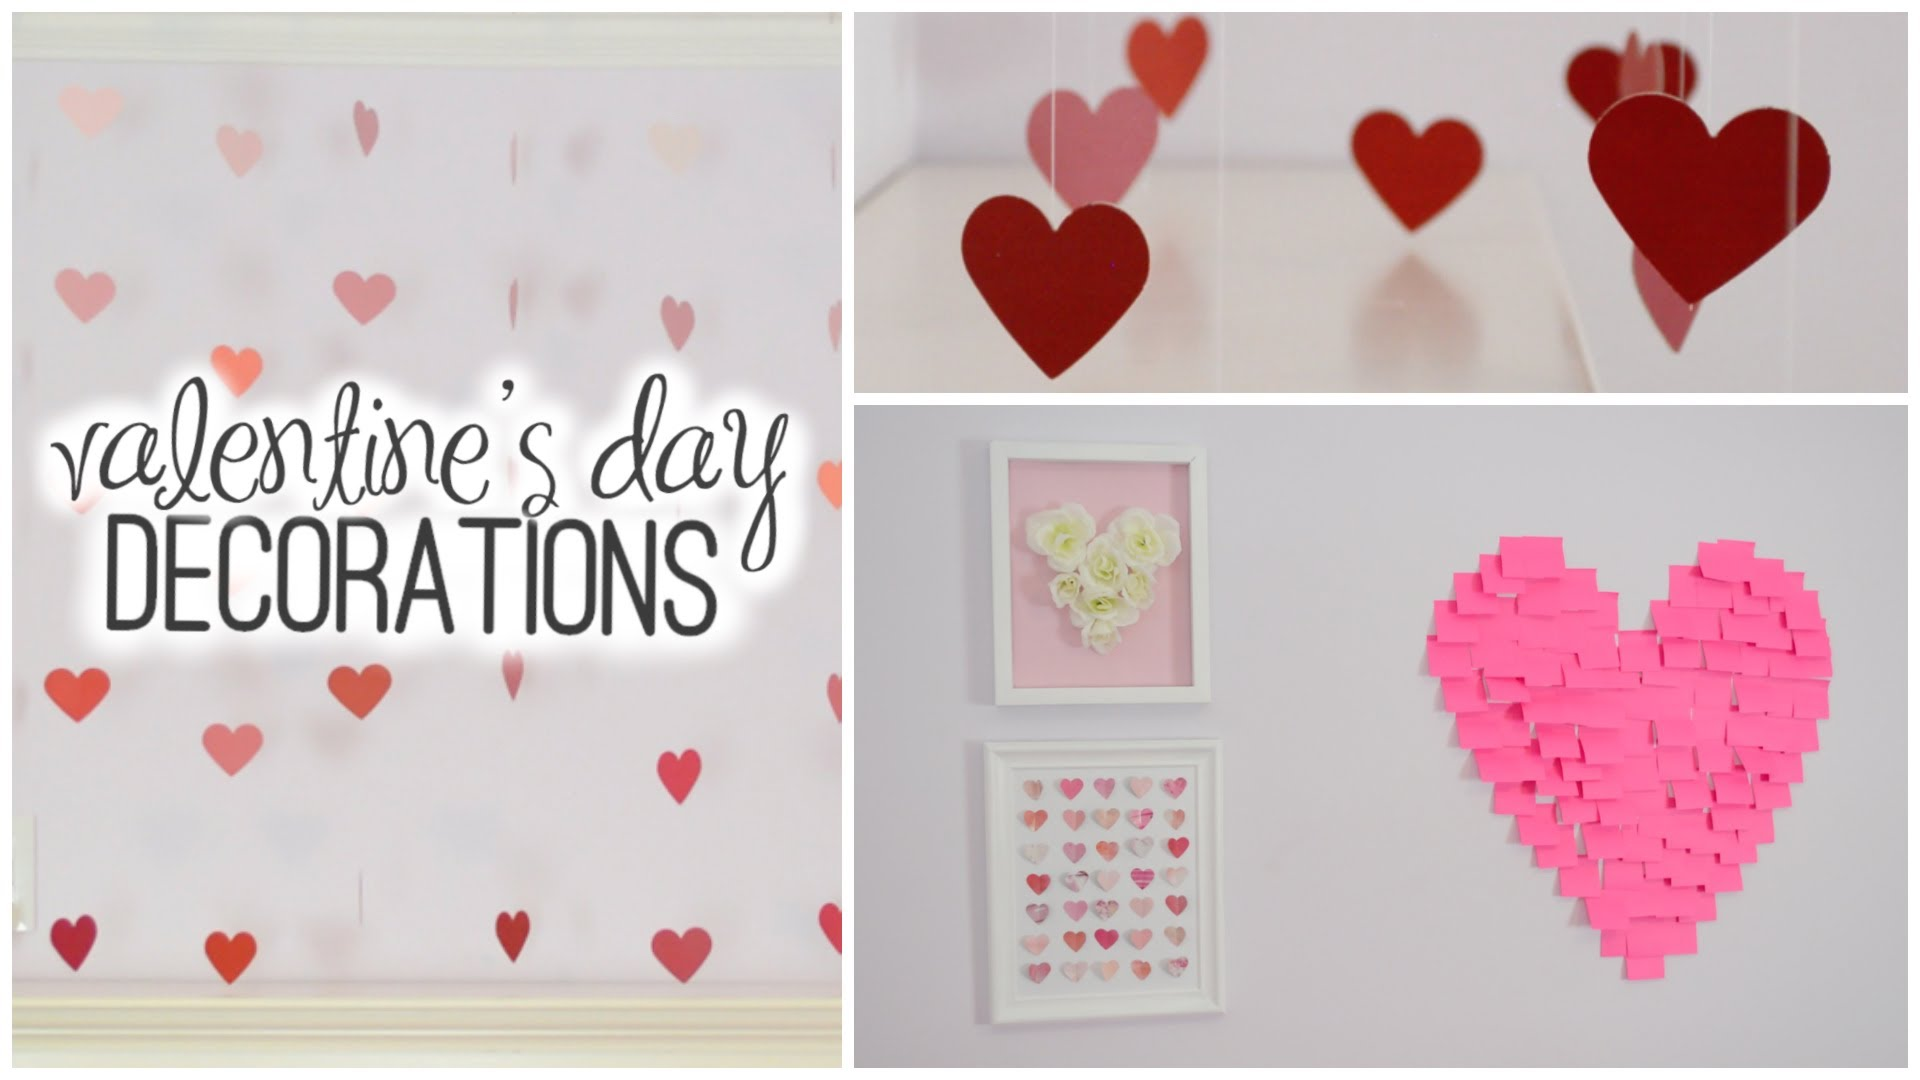 DIY Room Decorations for Valentine's Day! ♡ - YouTube